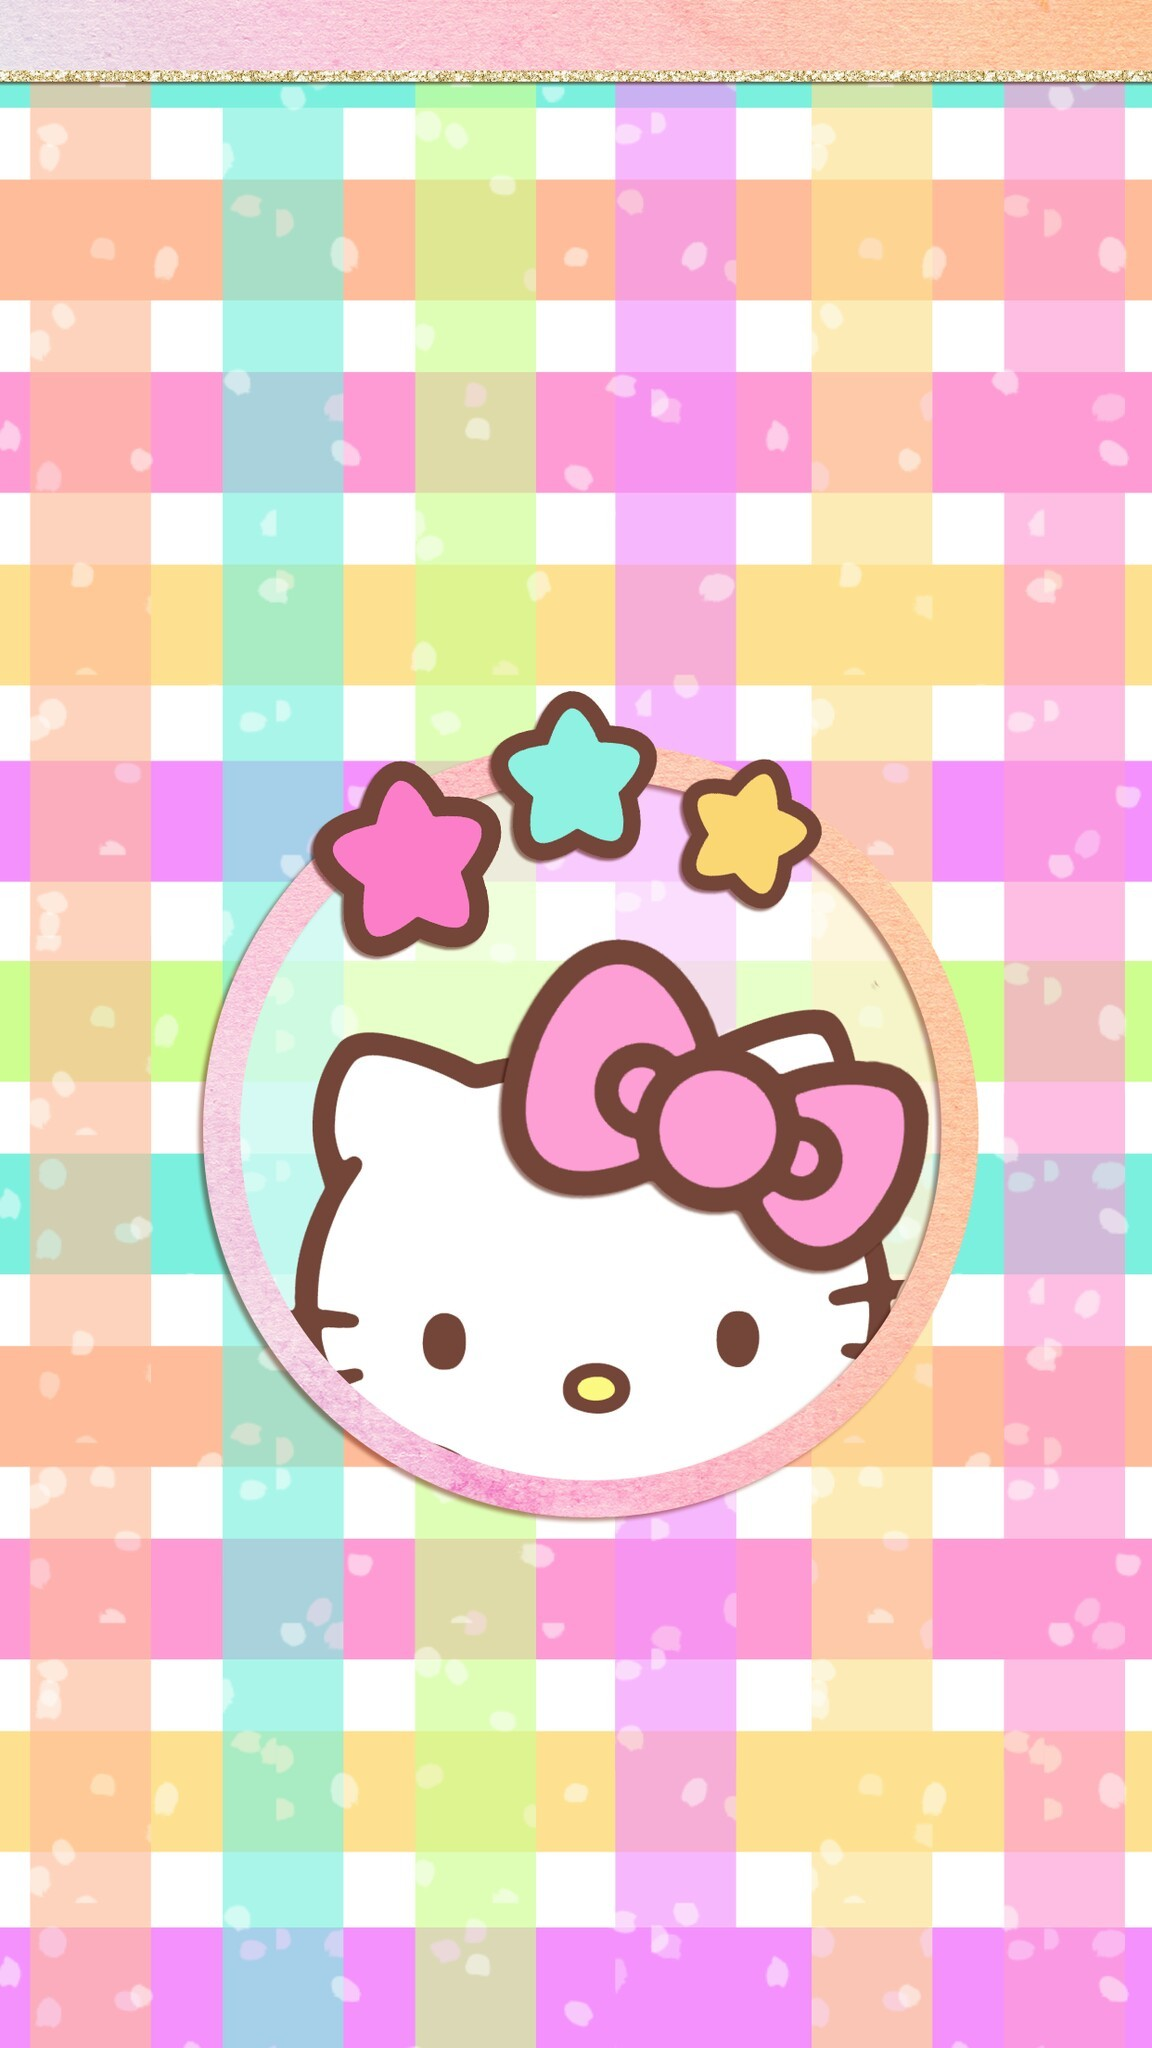 Simple Wallpaper Hello Kitty Spring - 610354-large-hello-kitty-spring-wallpaper-1152x2048-retina  Image_631491.jpg